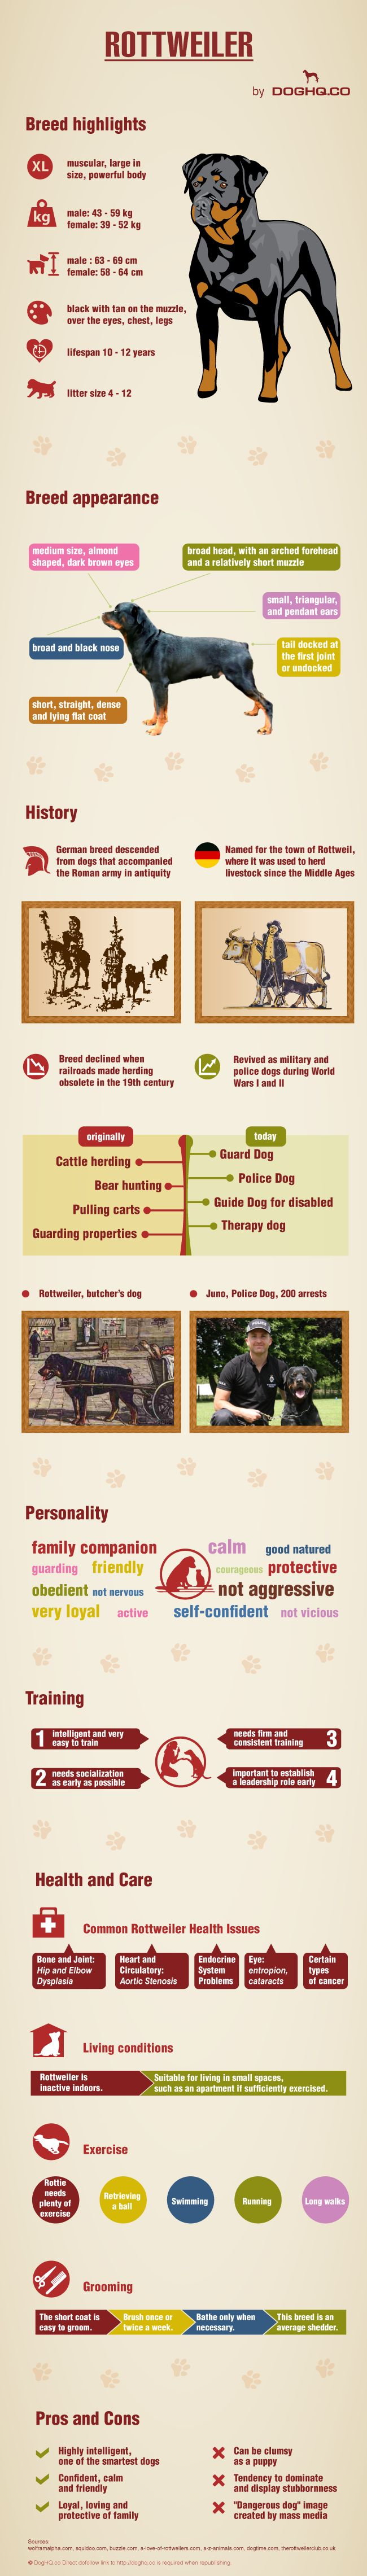 Rottweilers 101: Rottweilers 101, Rottie, Dogs Breeds Rottweilers, Rottweiler Facts, 101 Infographic